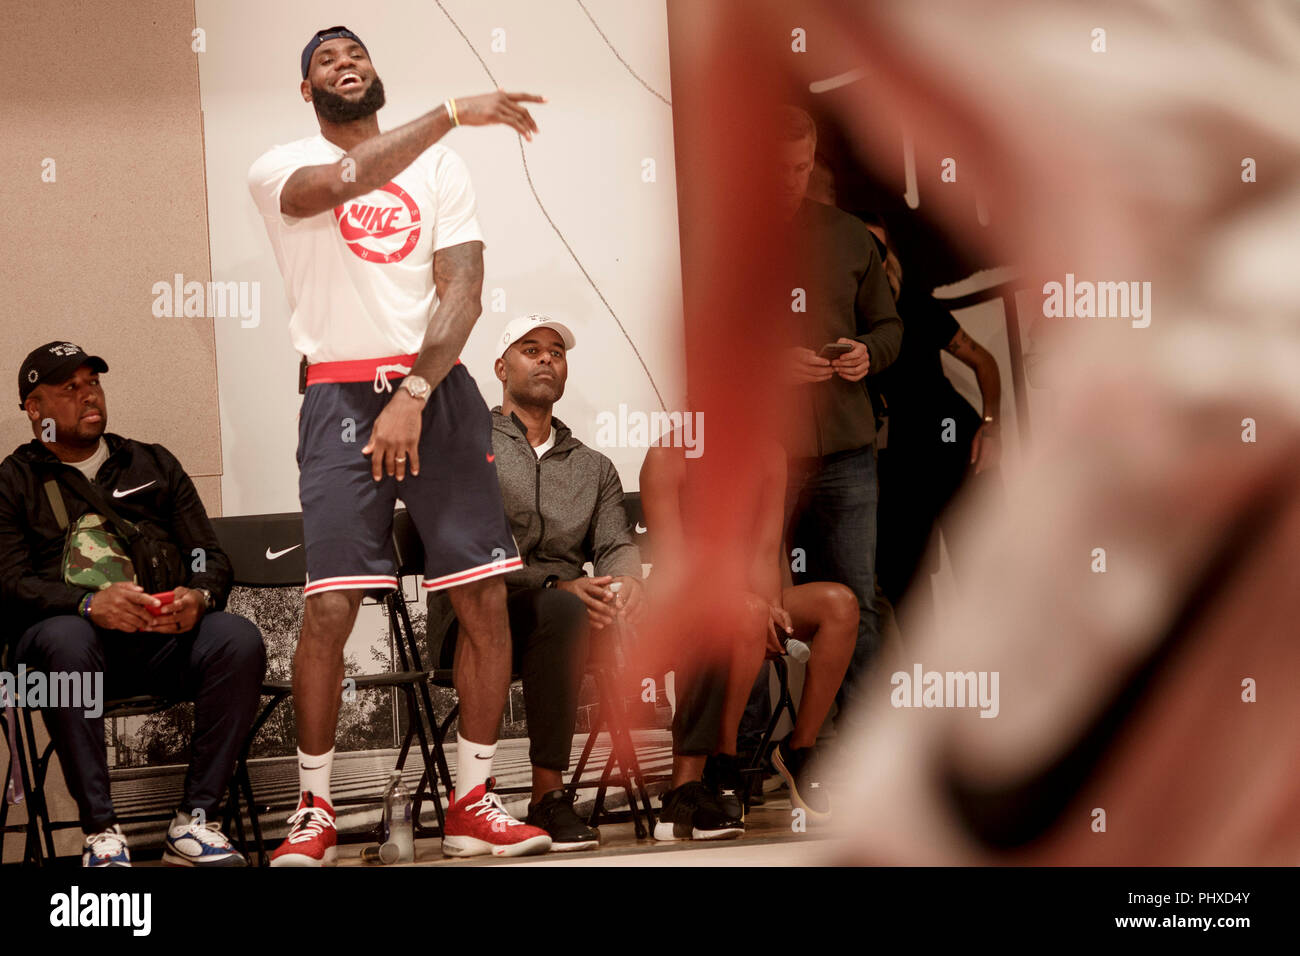 Berlin, Germany. 02nd Sep, 2018. 2.9.2018, Berlin: James LeBron, NBA professional of the Los Angeles Lakers, plays at a tournament during the promotion tour 'More than an athlete'. The two-time Olympic champion has won the North American professional league NBA three times in his career and is regarded as the best basketball player of his generation. Credit: Carsten Koall/dpa/Alamy Live News - Stock Image